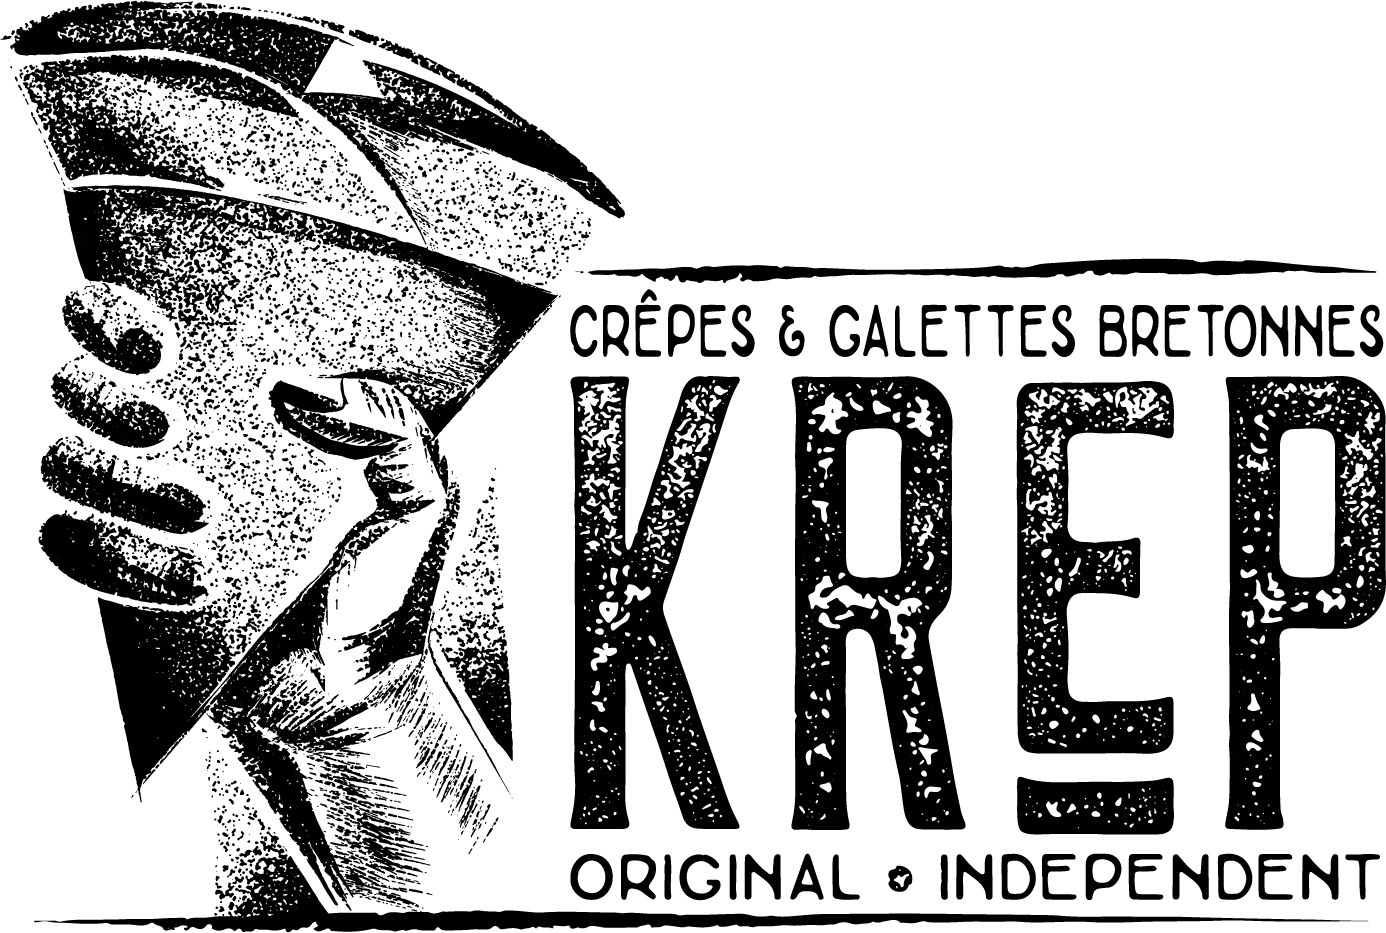 Krep Crepes & Galettes